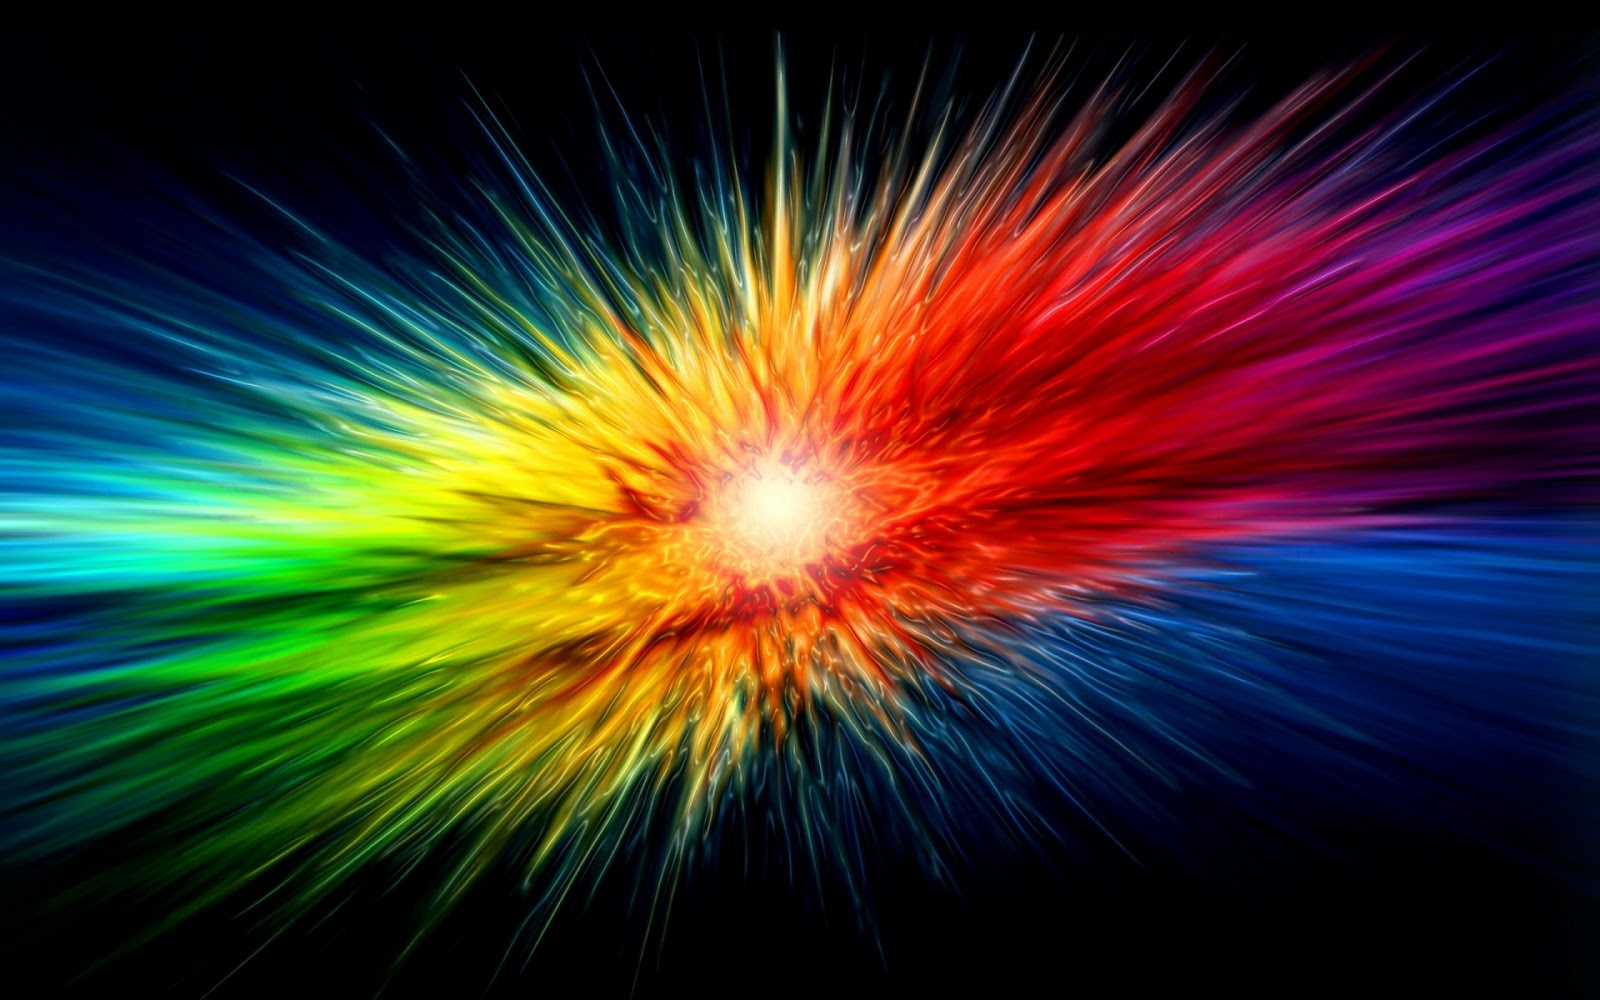 WOW: HD Wallpapers Colorful Abstract Desktop Backgrounds